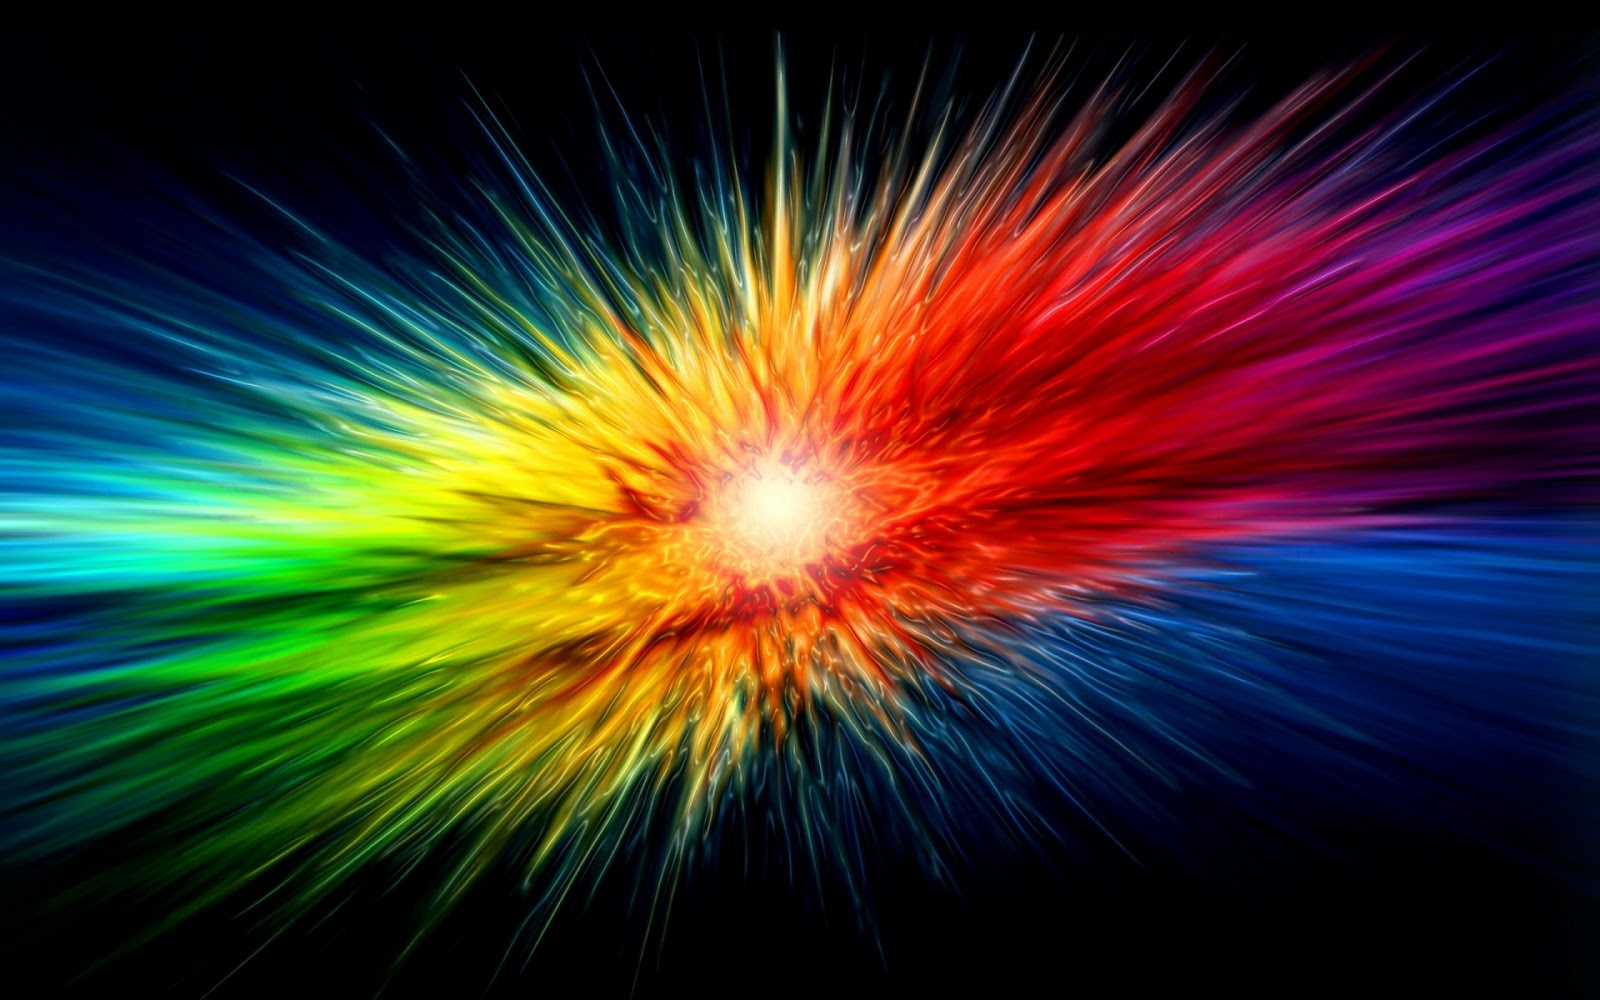 WOW: HD Wallpapers Colorful Abstract Desktop Backgrounds